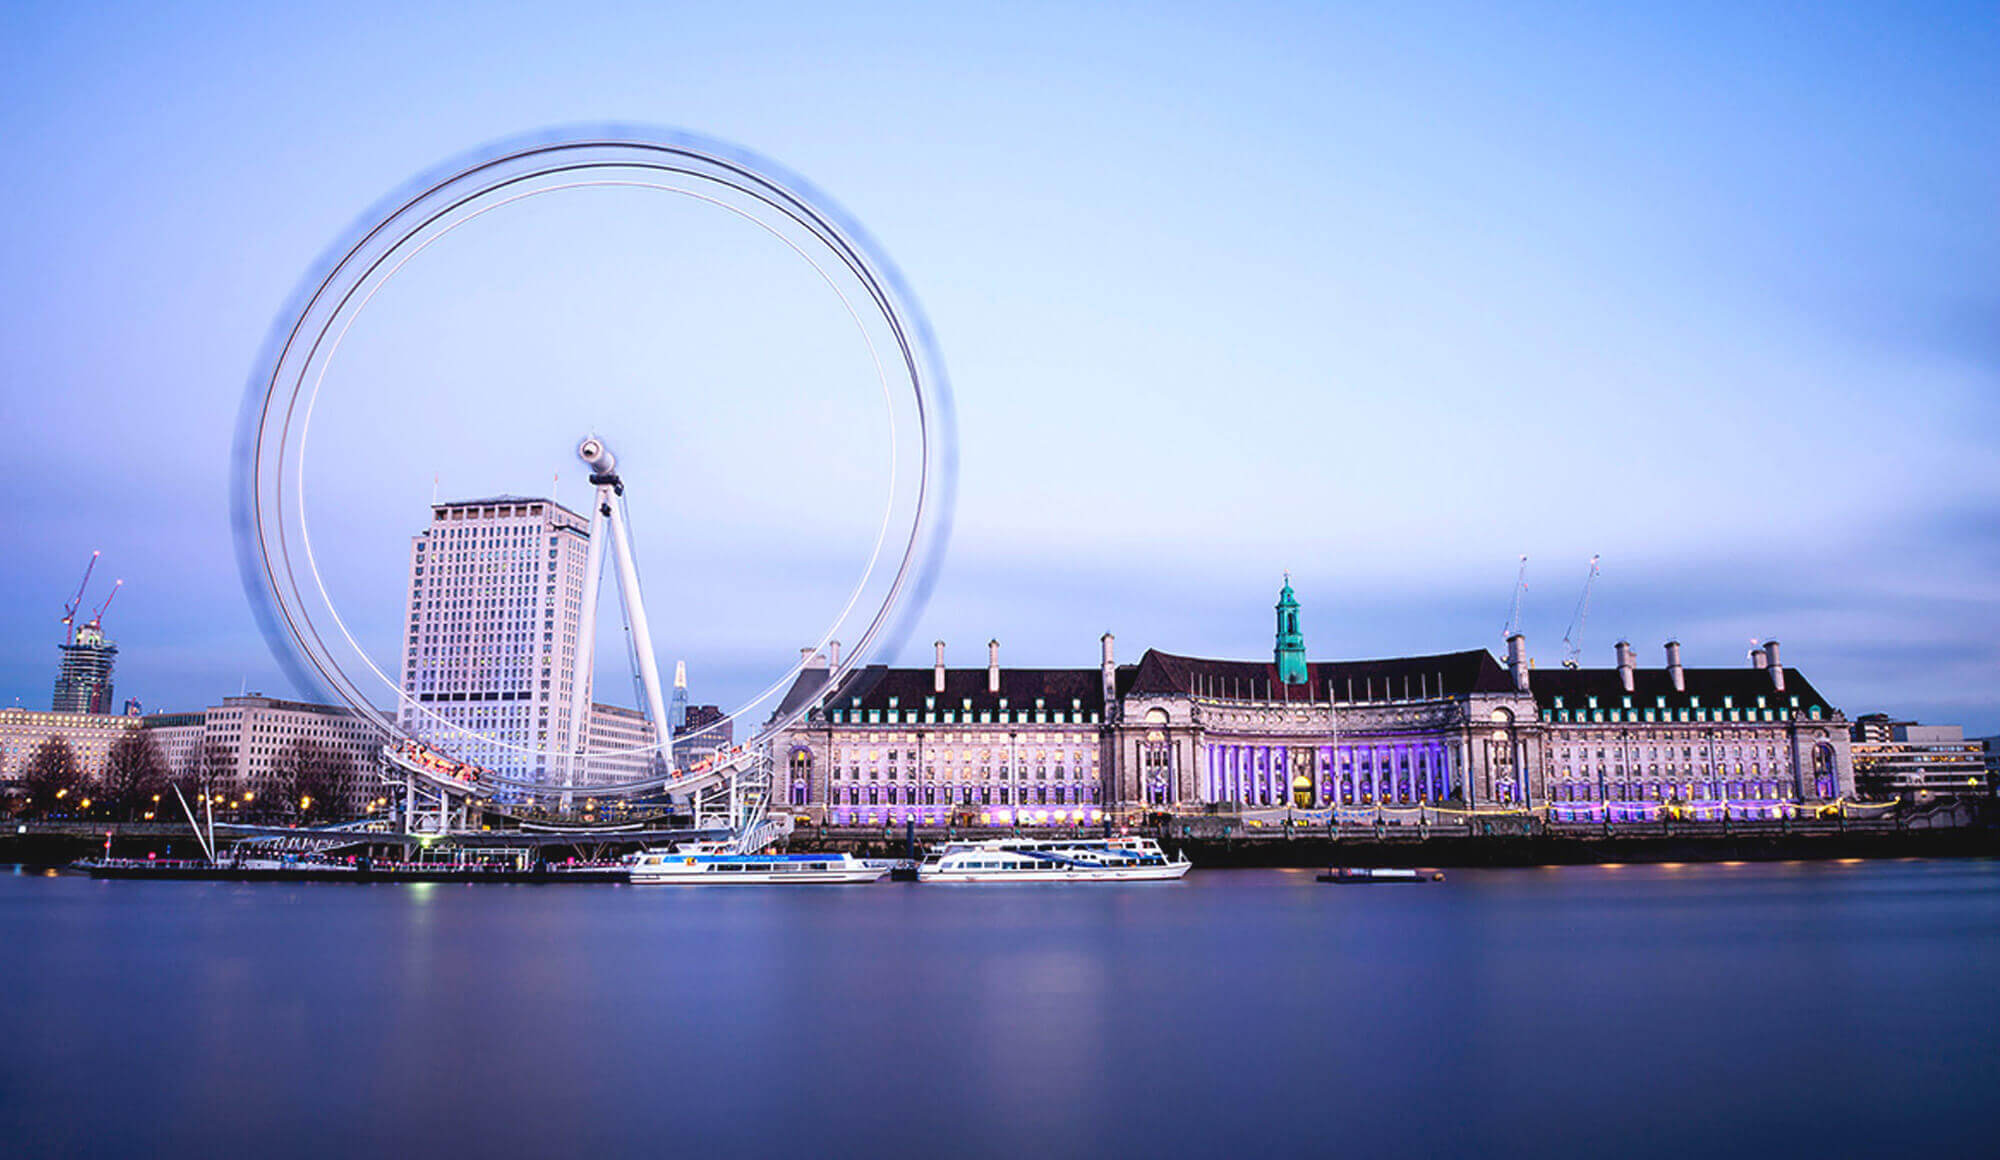 Chauffeur Driven Tour Of London Eye London Luxury Cars